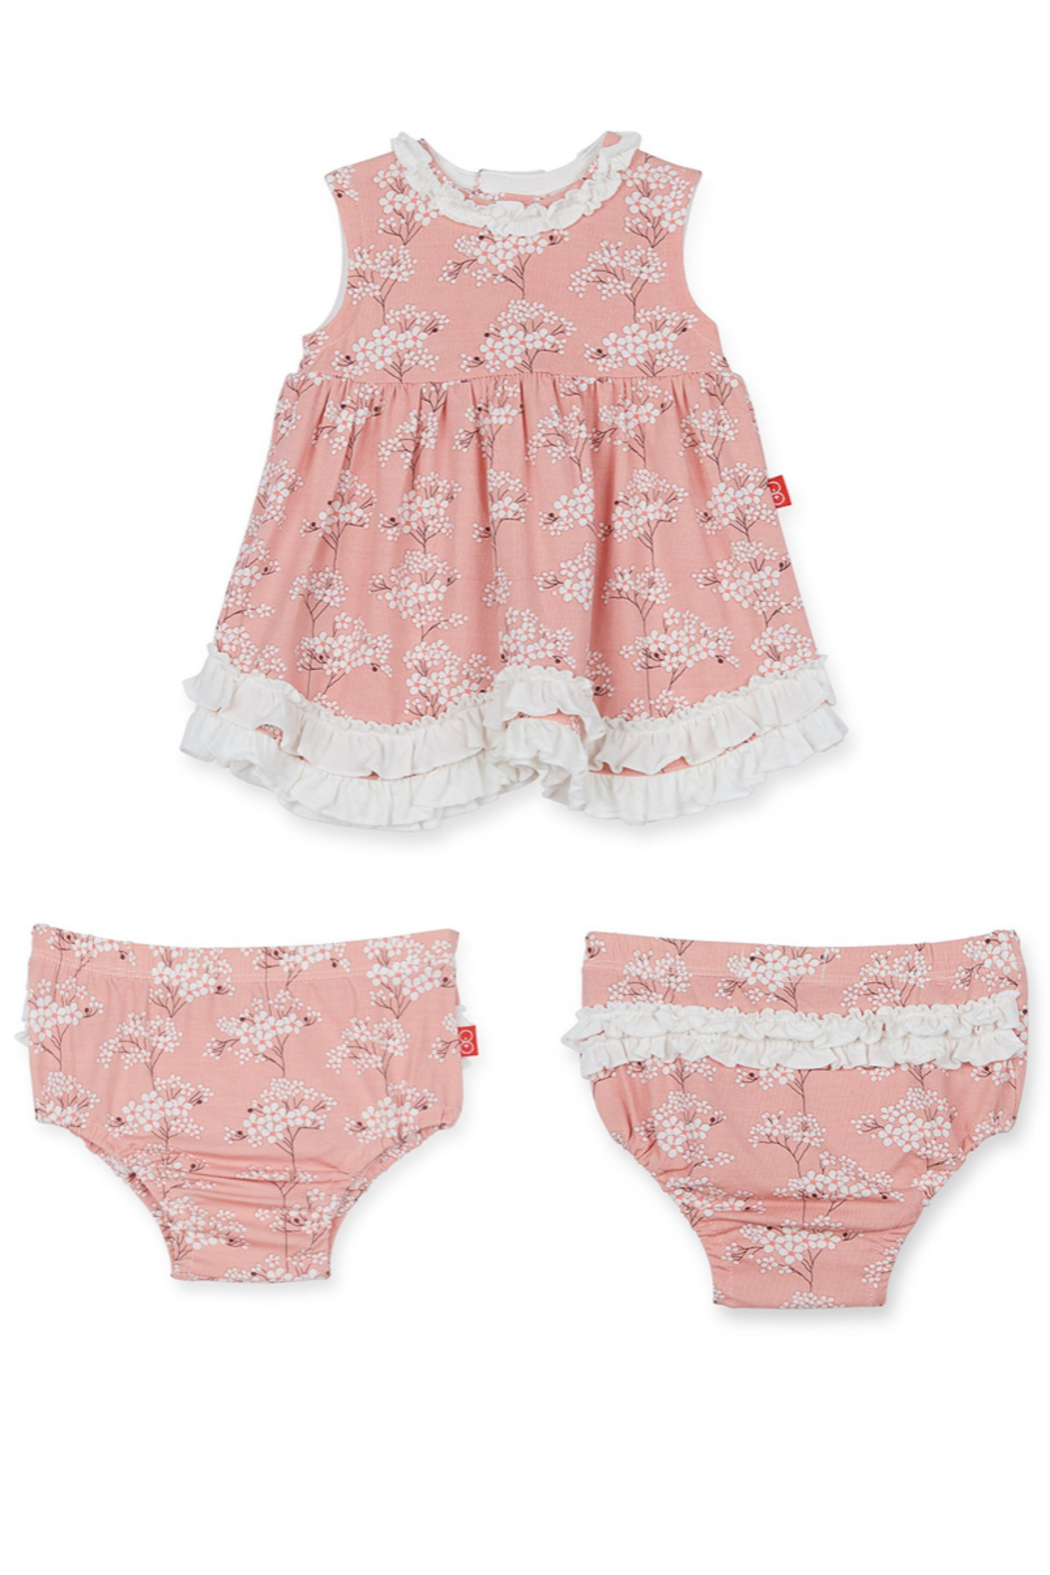 Magnetic Me Cherry Blossom Modal Dress/Diaper Cover - Main Image